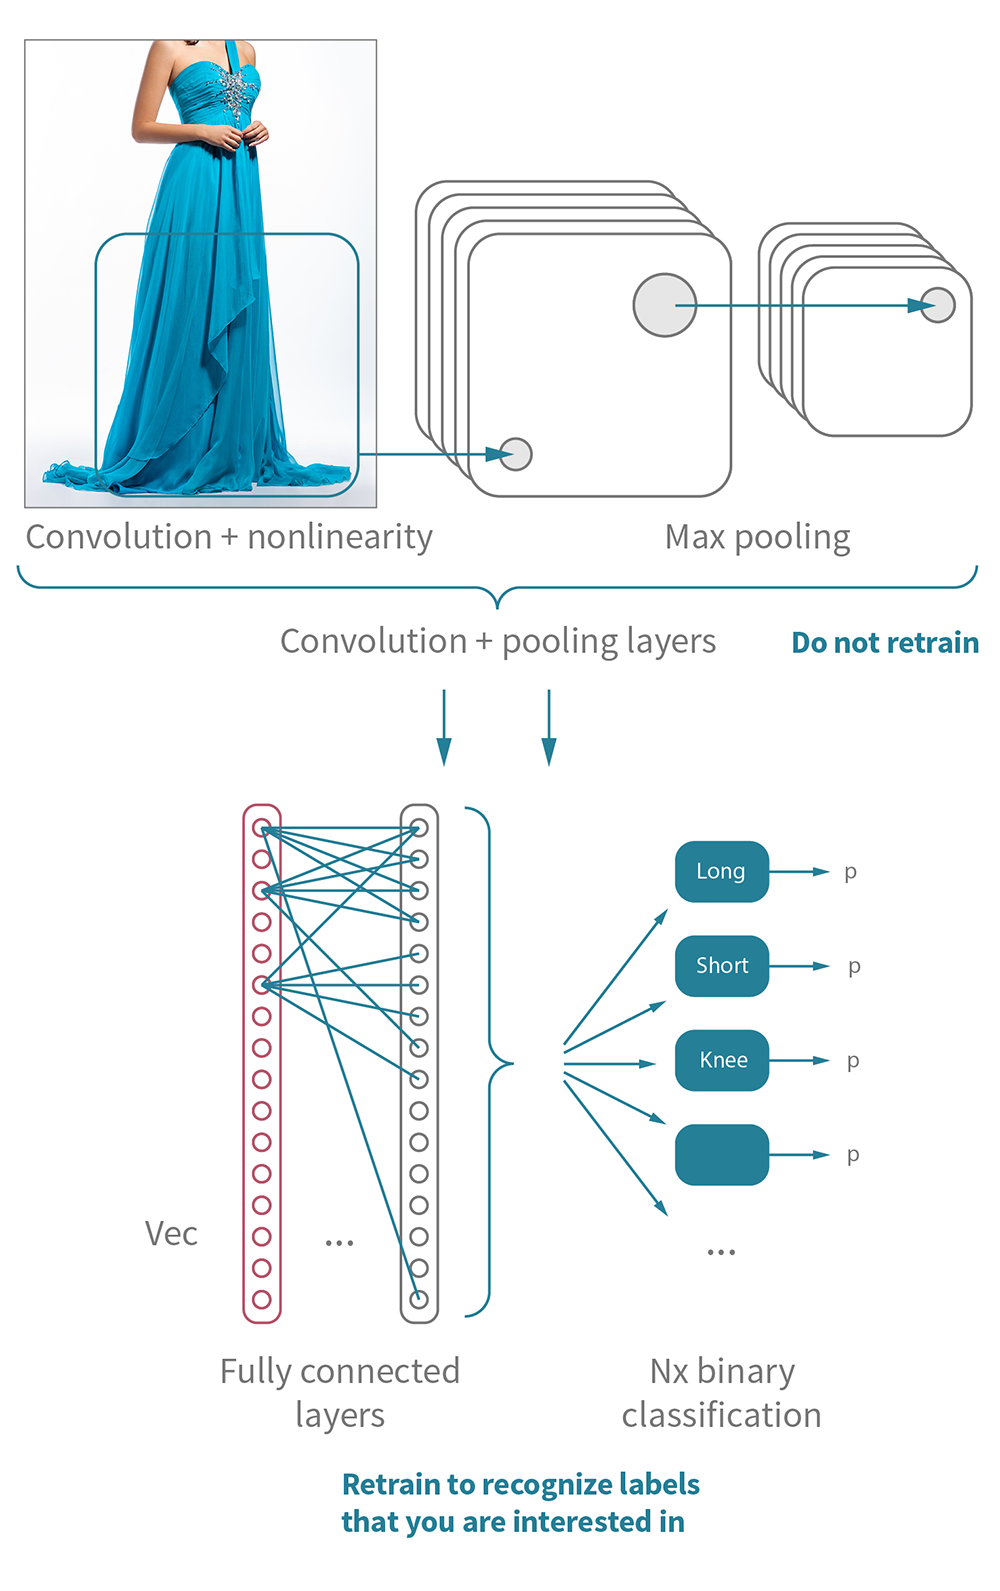 Illustration of retraining the fully connected layer in a Convolutional Neural Network to recognize new labels for e-commerce use case.